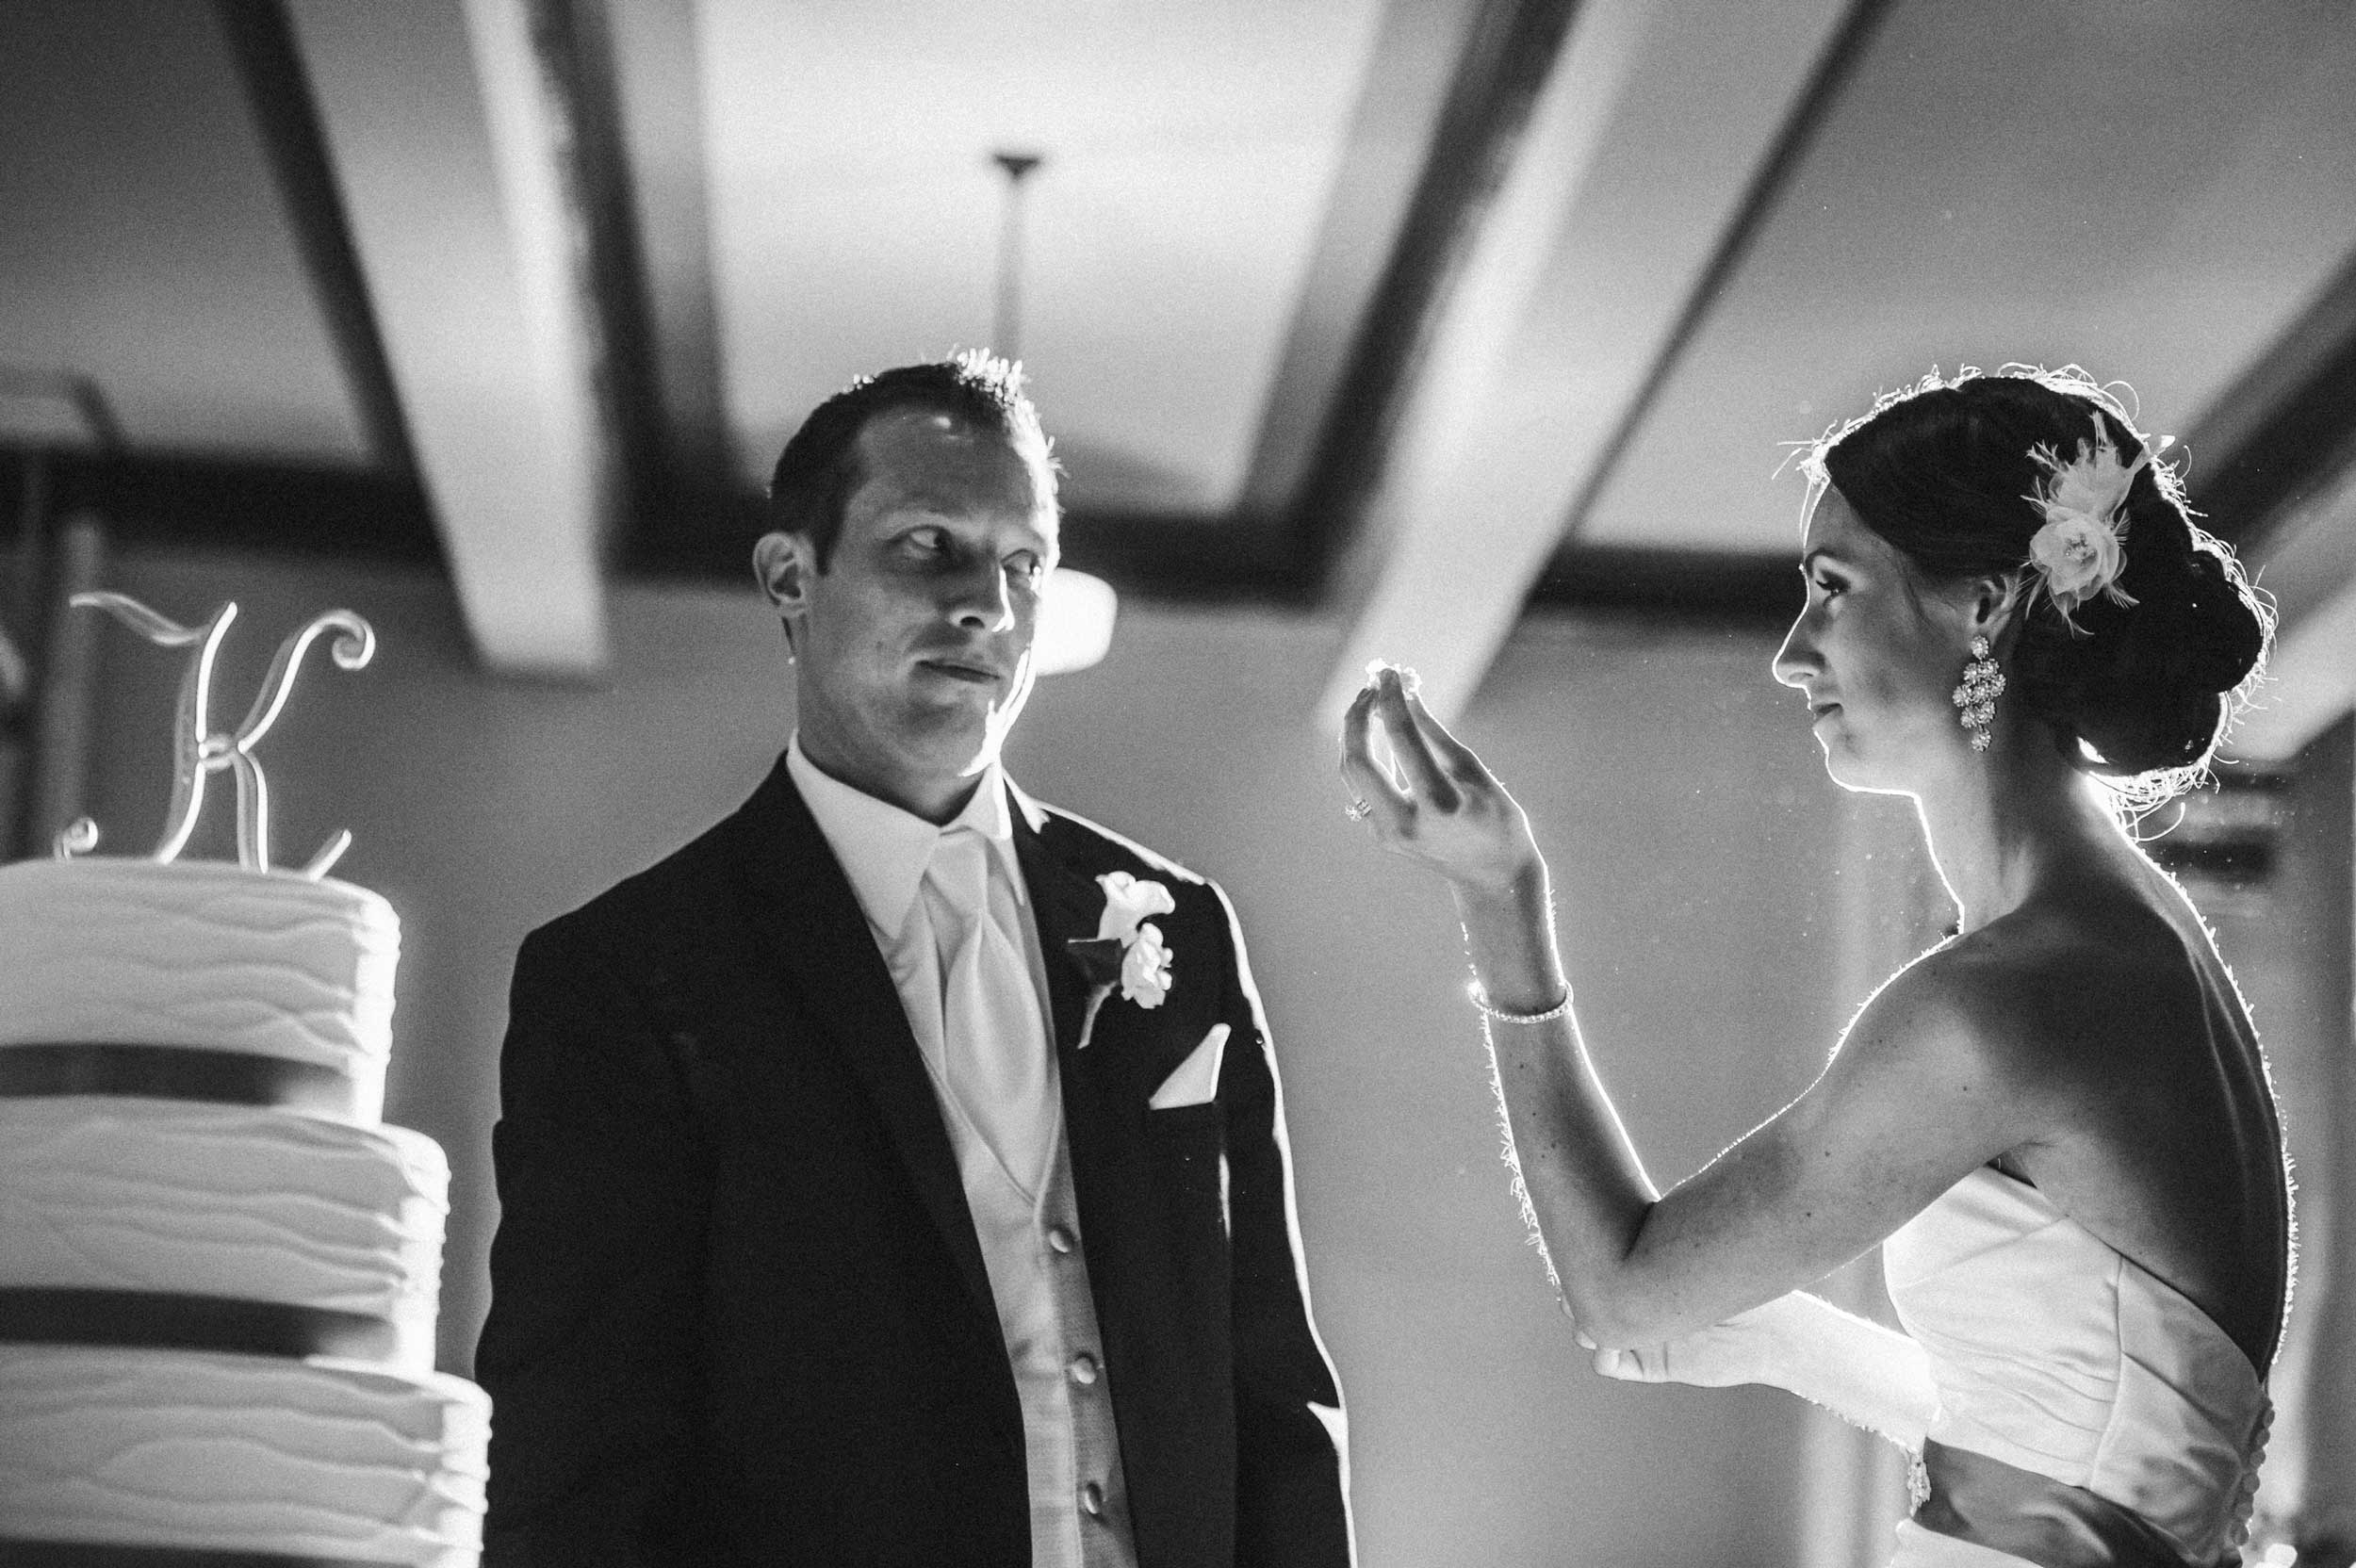 Groom giving the bride a warning look as they cut the cake